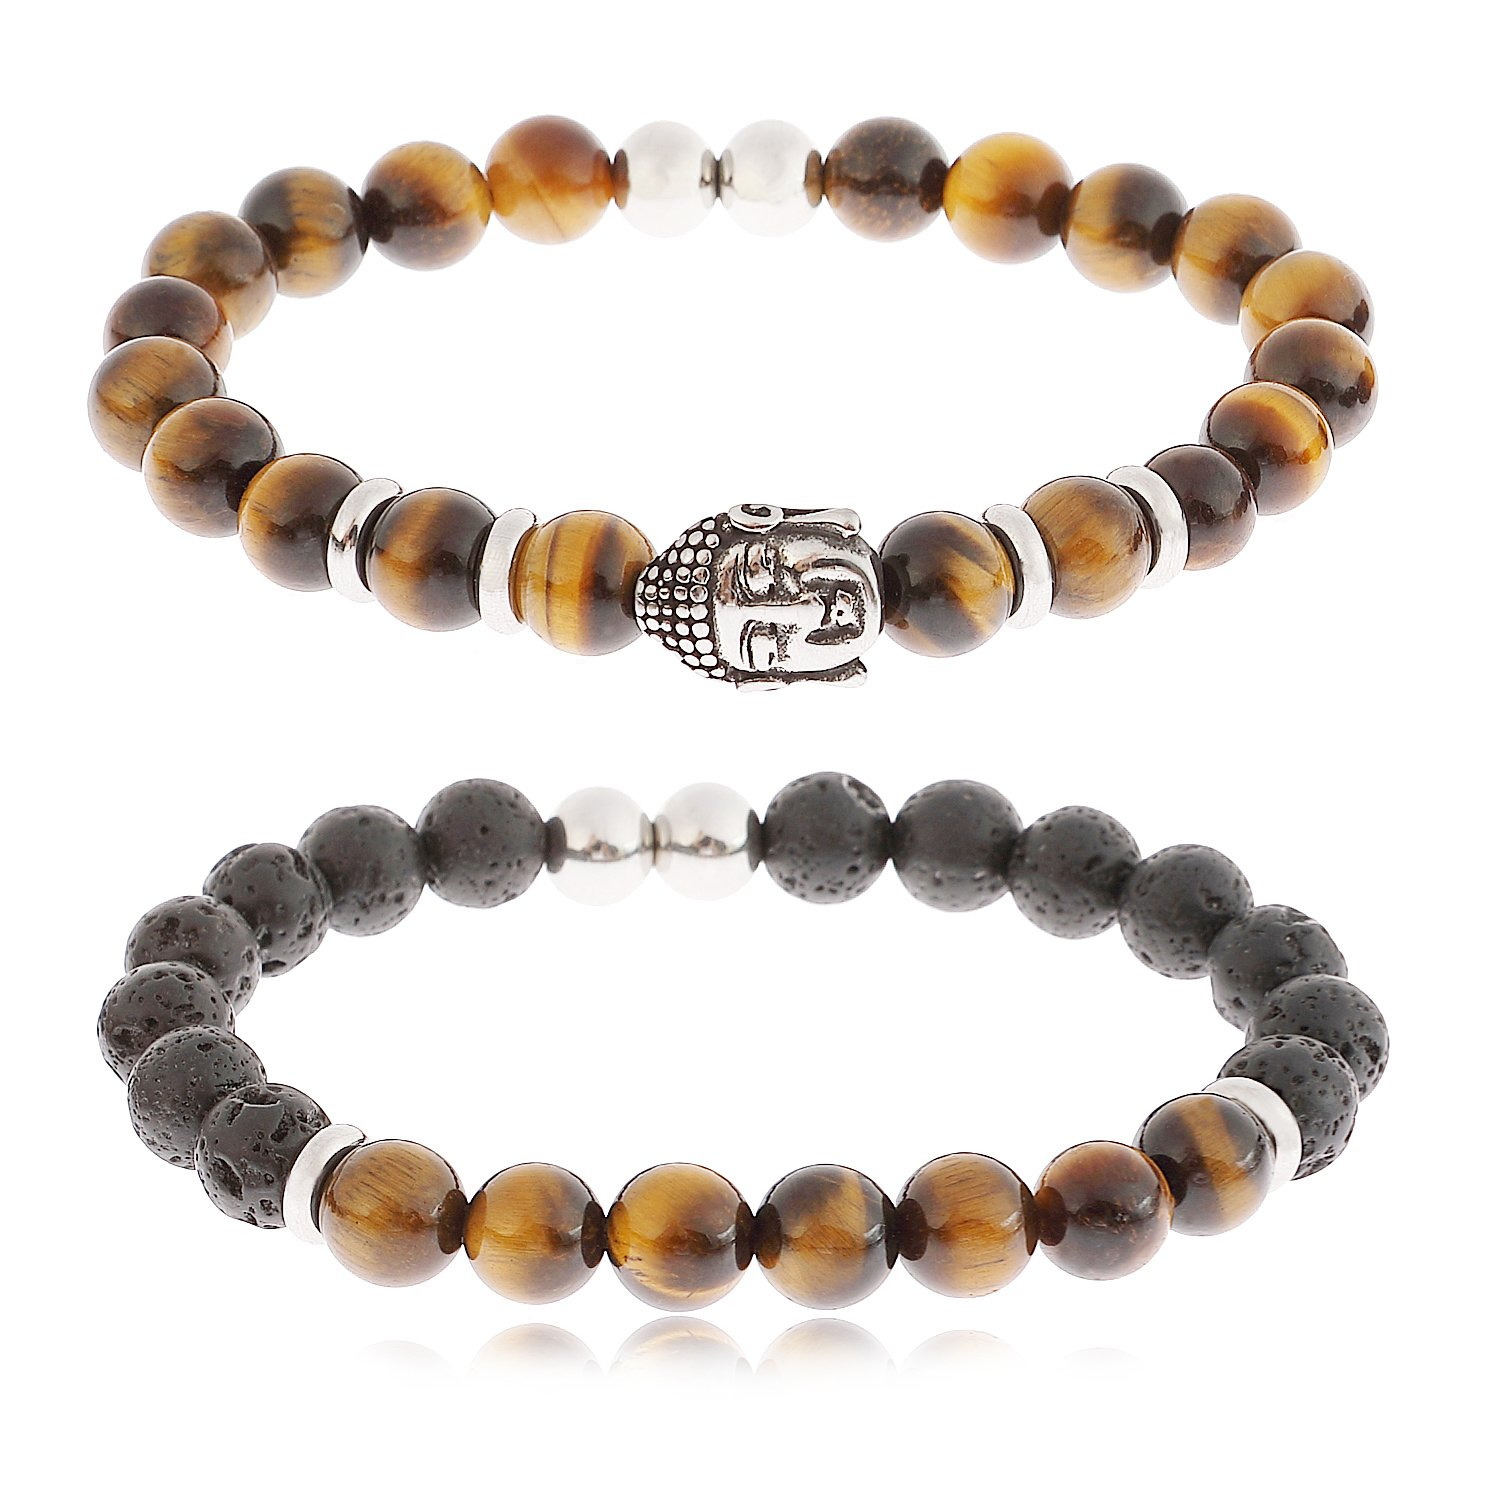 YILIBAO 8mm Tiger Eye Stone Lava Rock Bracelet Essential Oil Diffuser Yoga Beads, Stainless Steel Jewelry